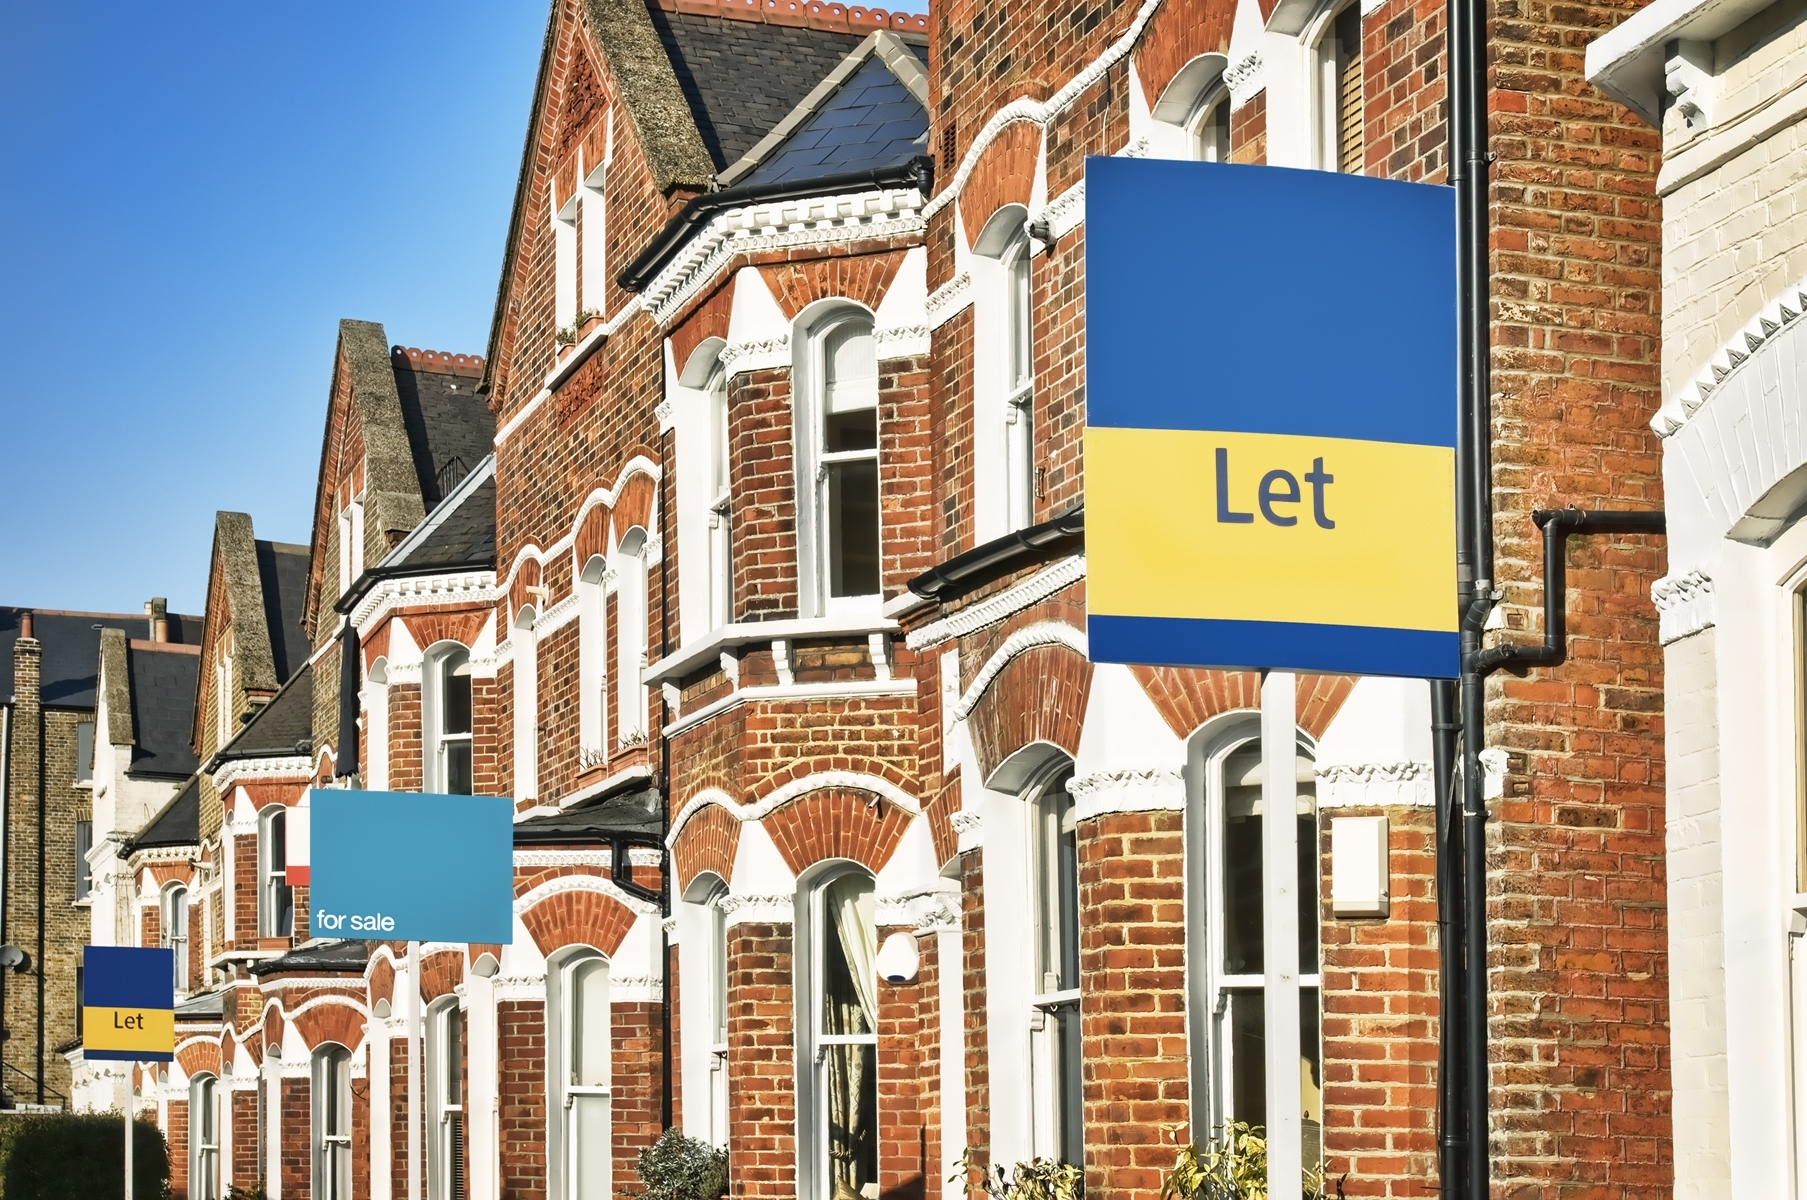 TO LET: New survey reveals rents are predicted to rocket